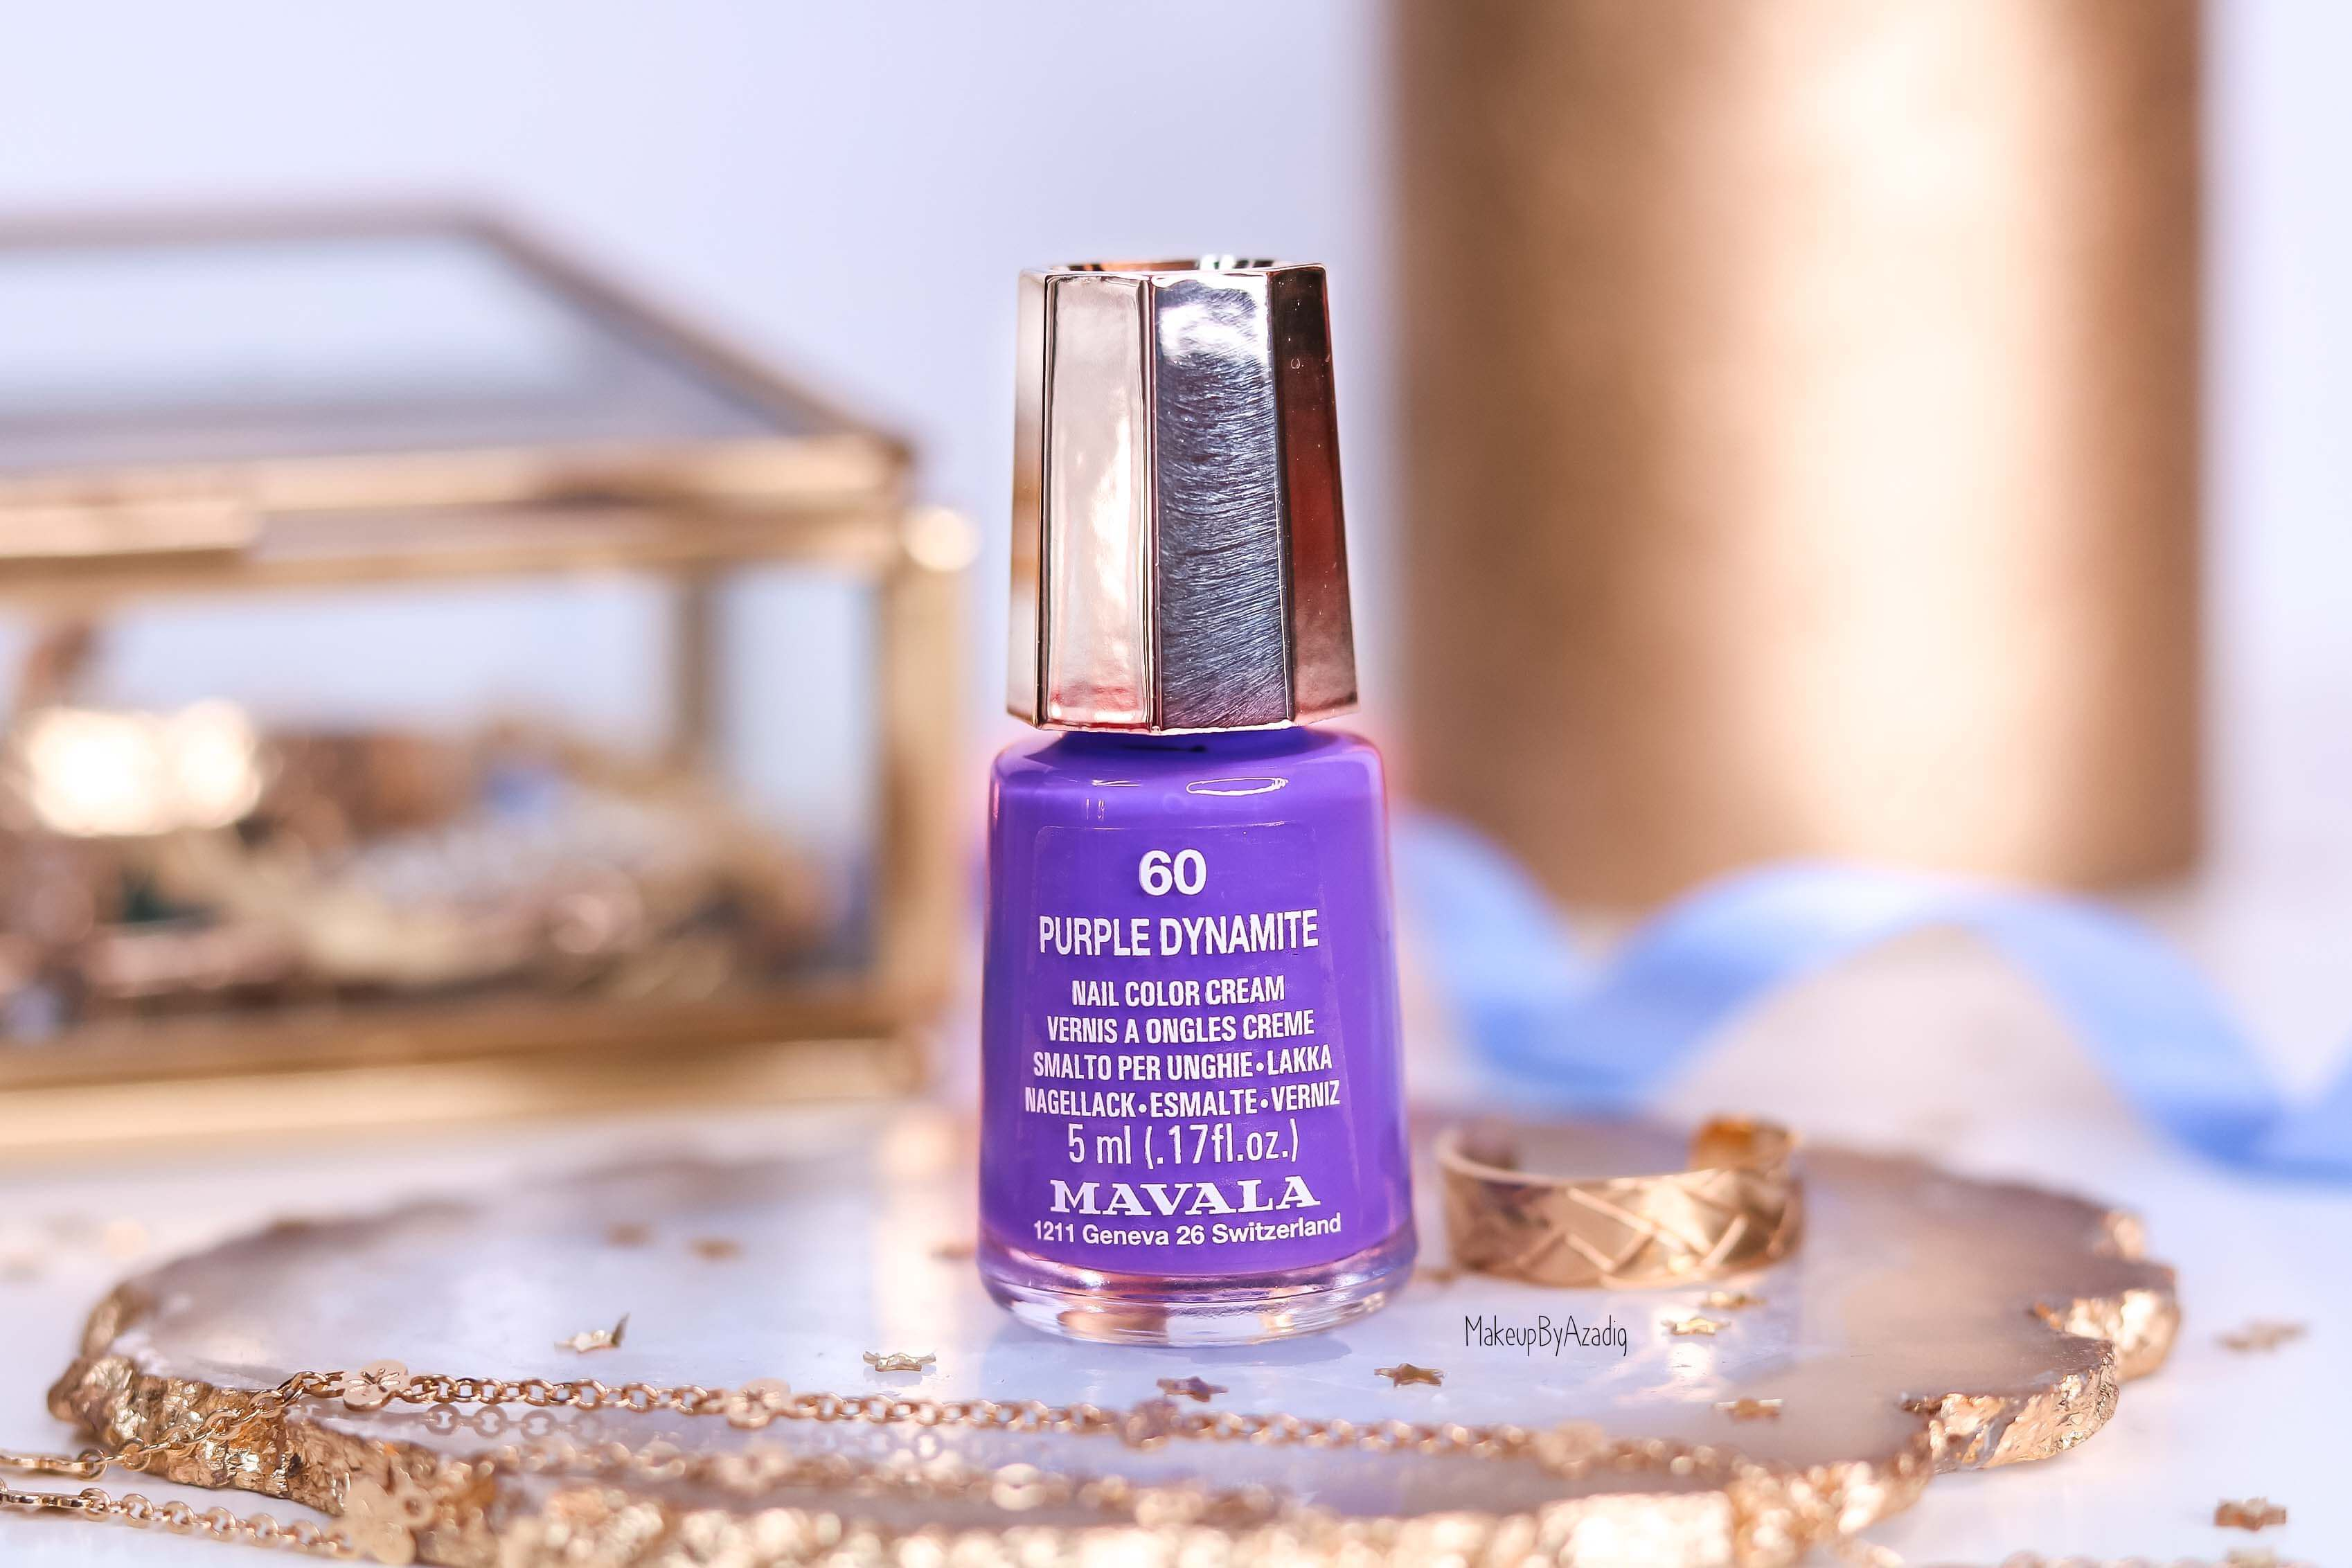 revue-vernis-mavala-collection-colorclub-rose-violet-pop-makeupbyazadig-avis-prix-swatch-paris-purple-dynamite